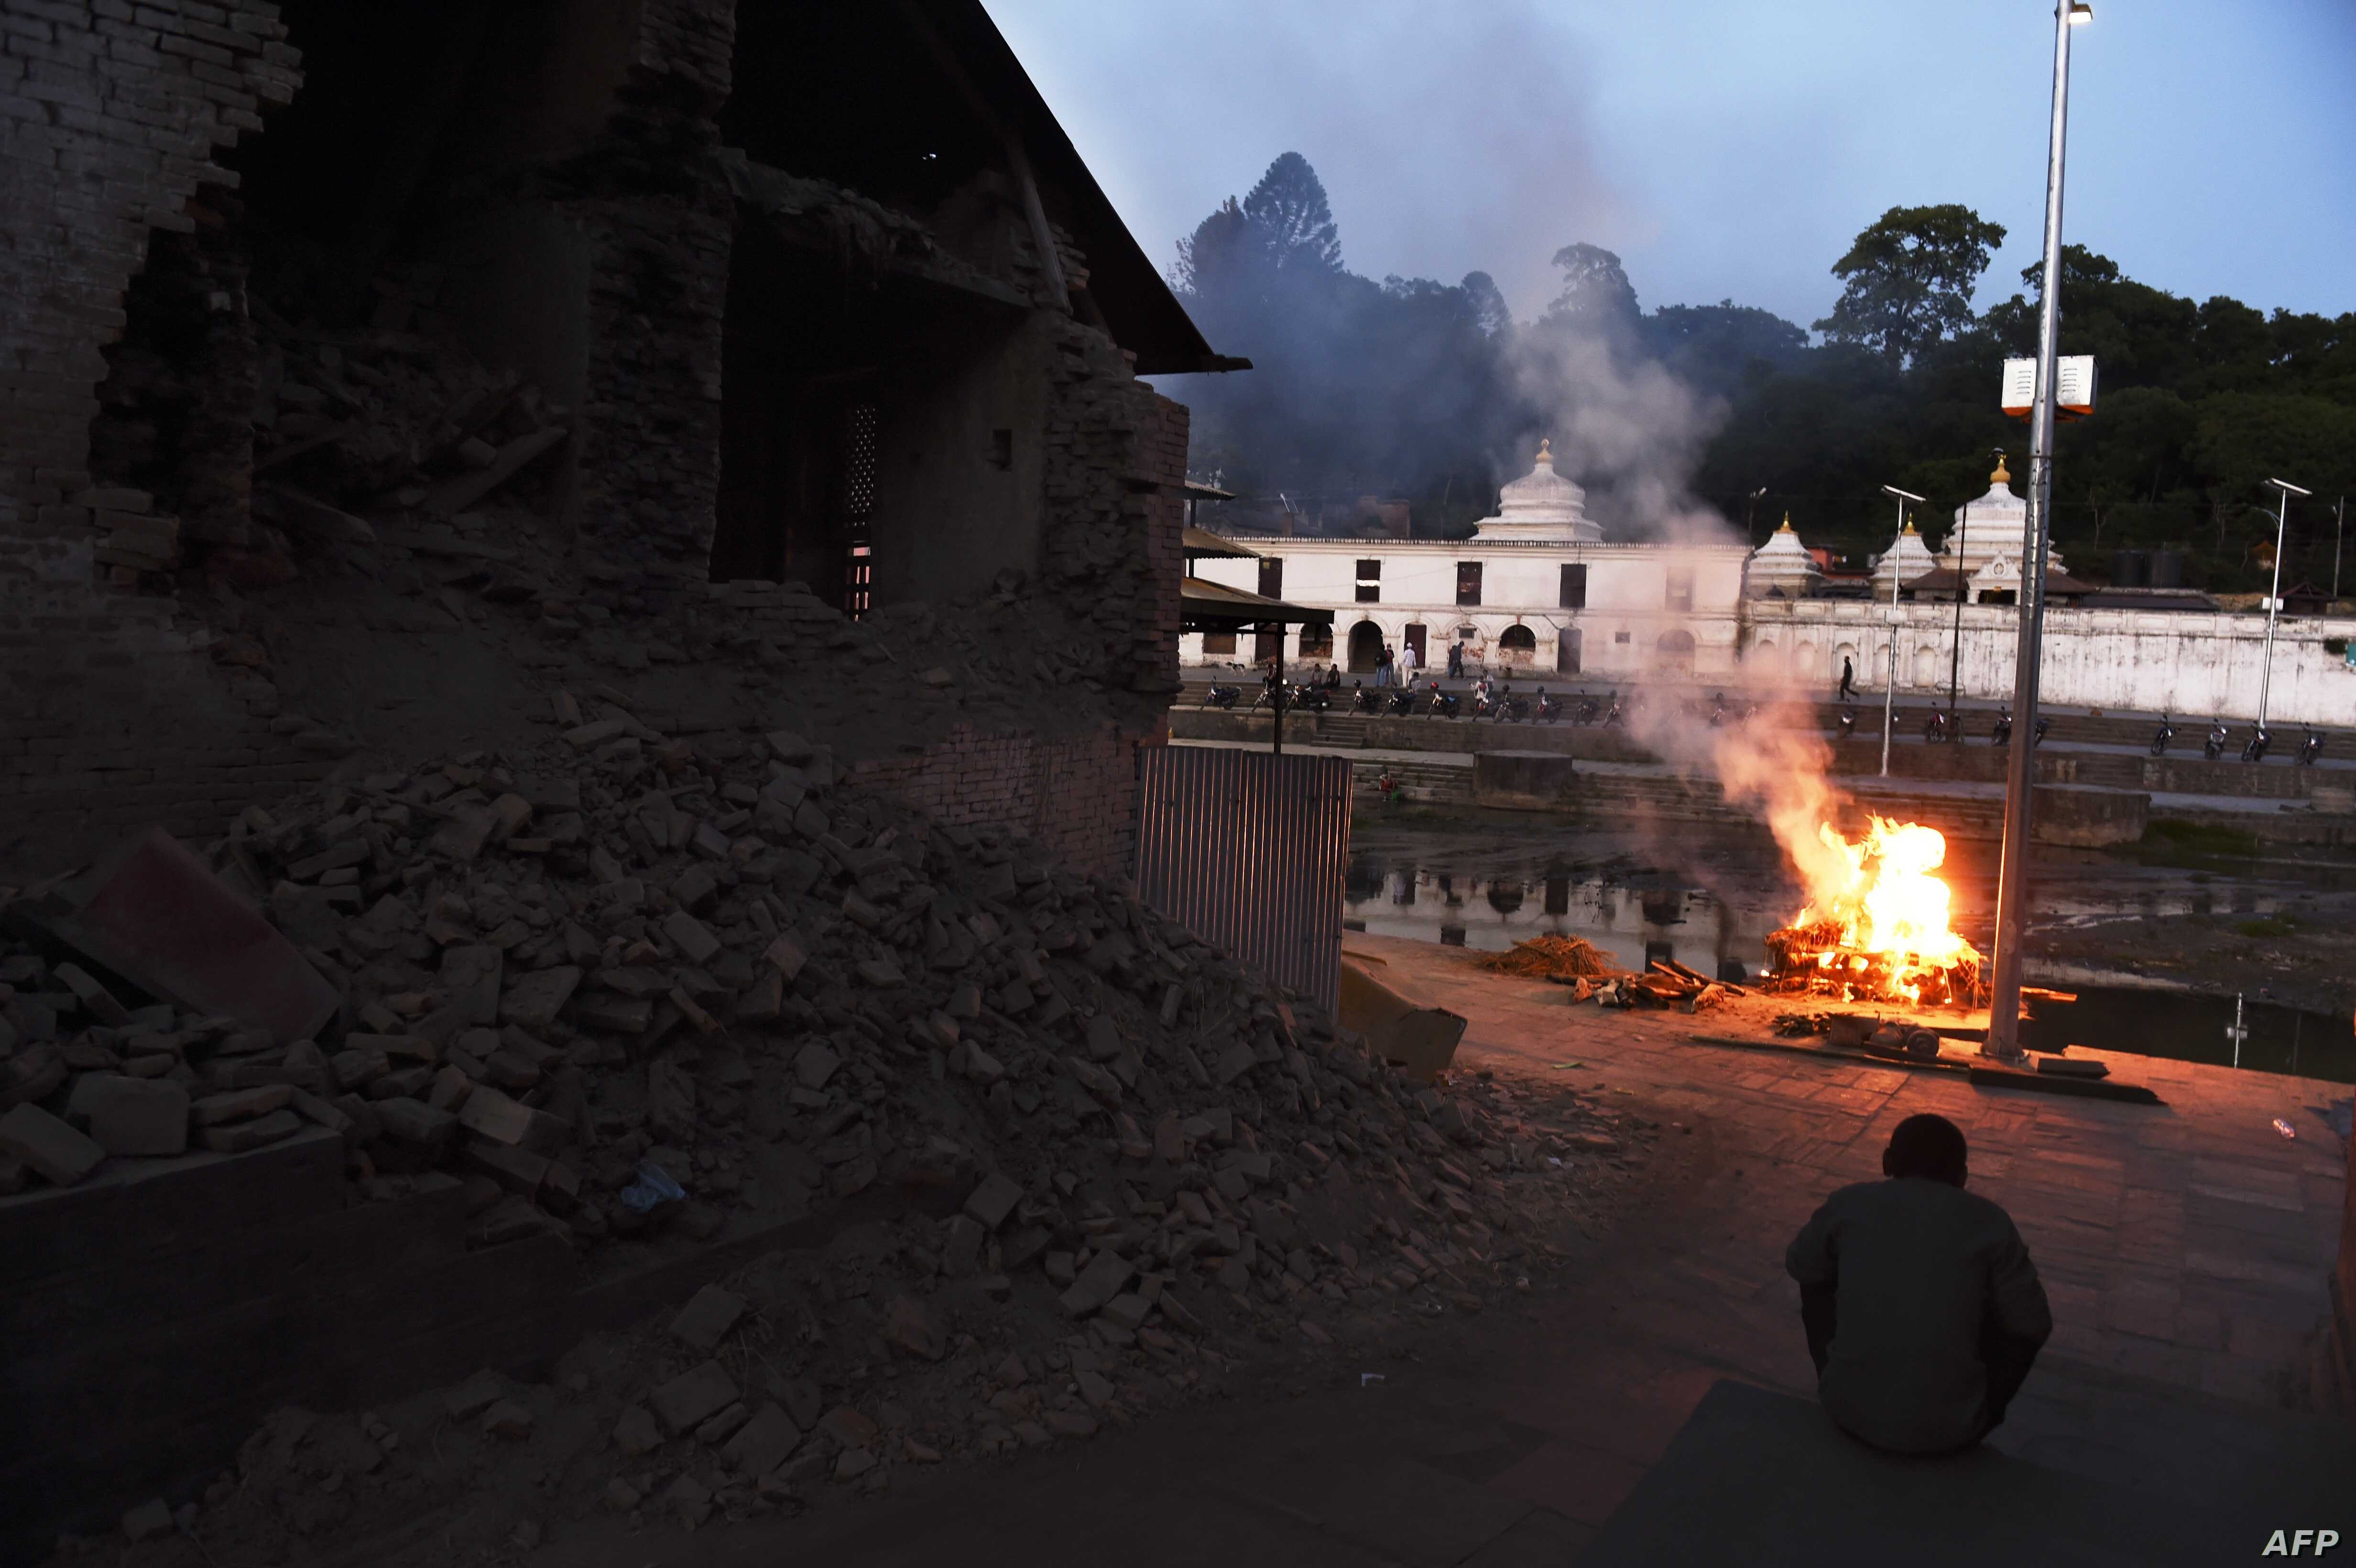 A Nepalese man sits near a collapsed wall and a burning pyre with the mortal remains of earthquake victim Sushila Thami at an open air crematorium in Kathmandu on May 5, 2015, after her body was brought from Dolakha.